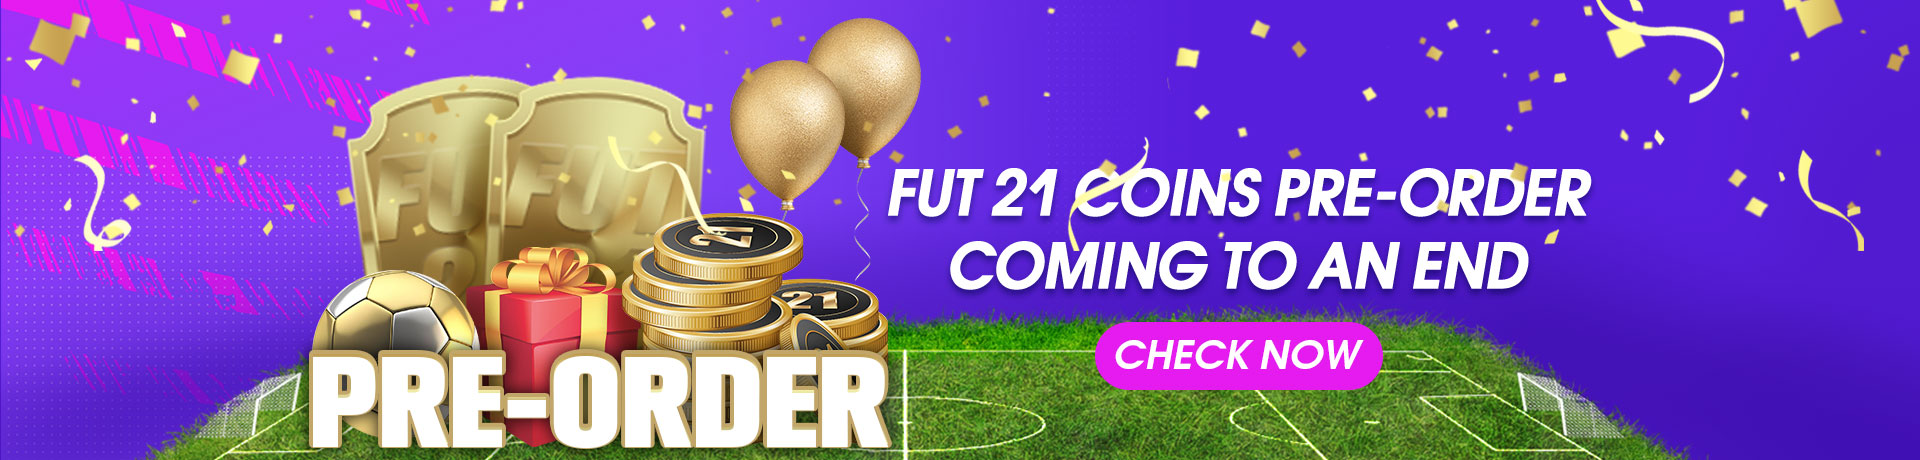 FUT 21 voucher end